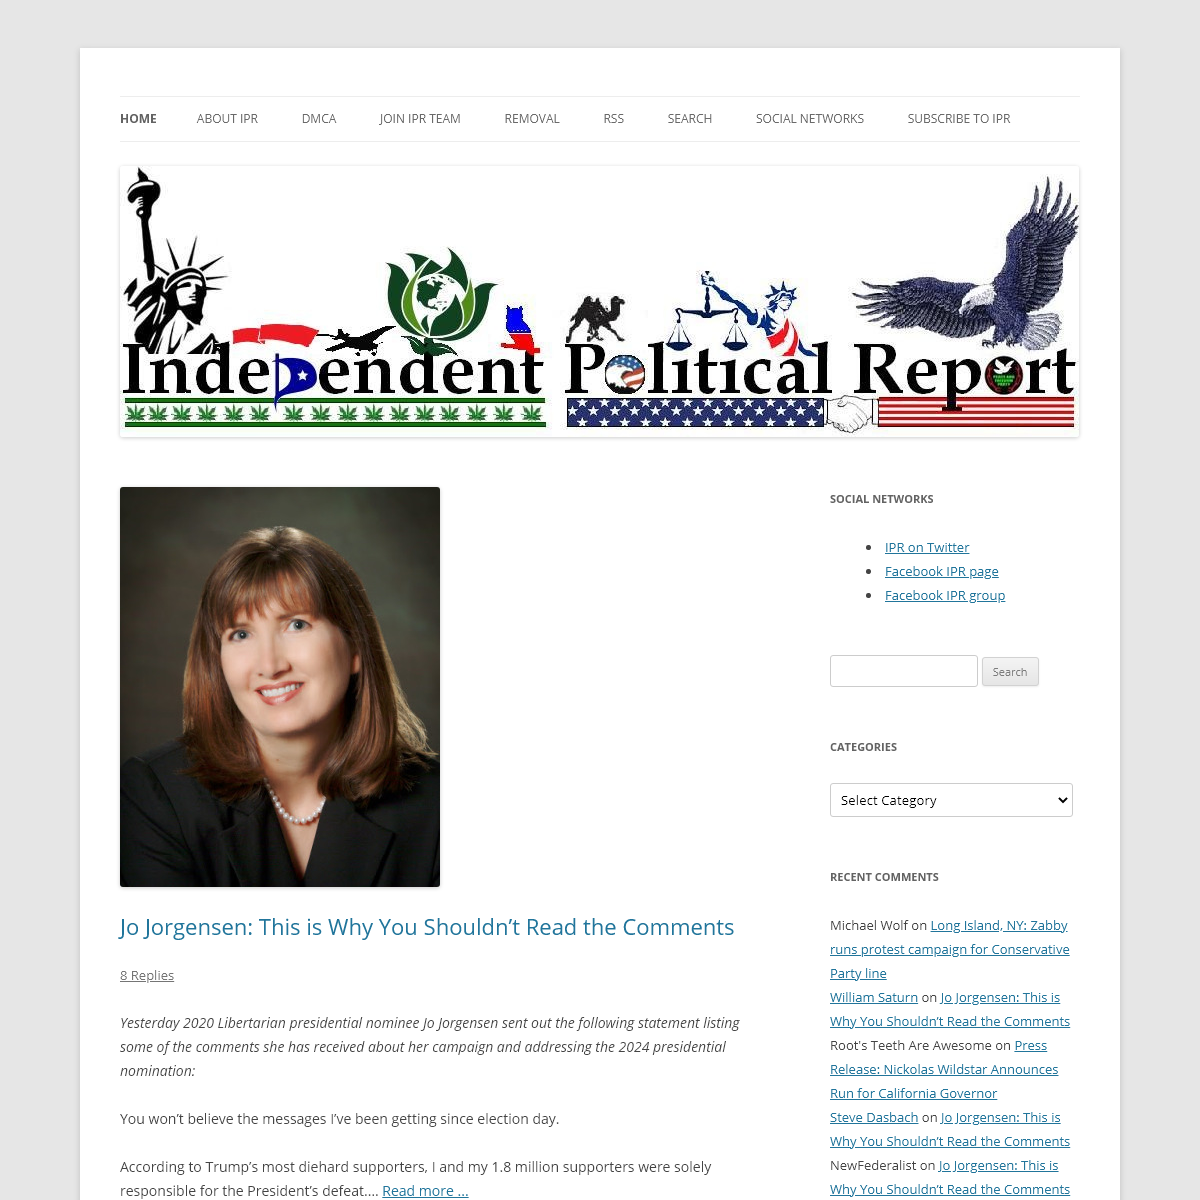 Independent Political Report - Covering third parties and independent candidates since 2008